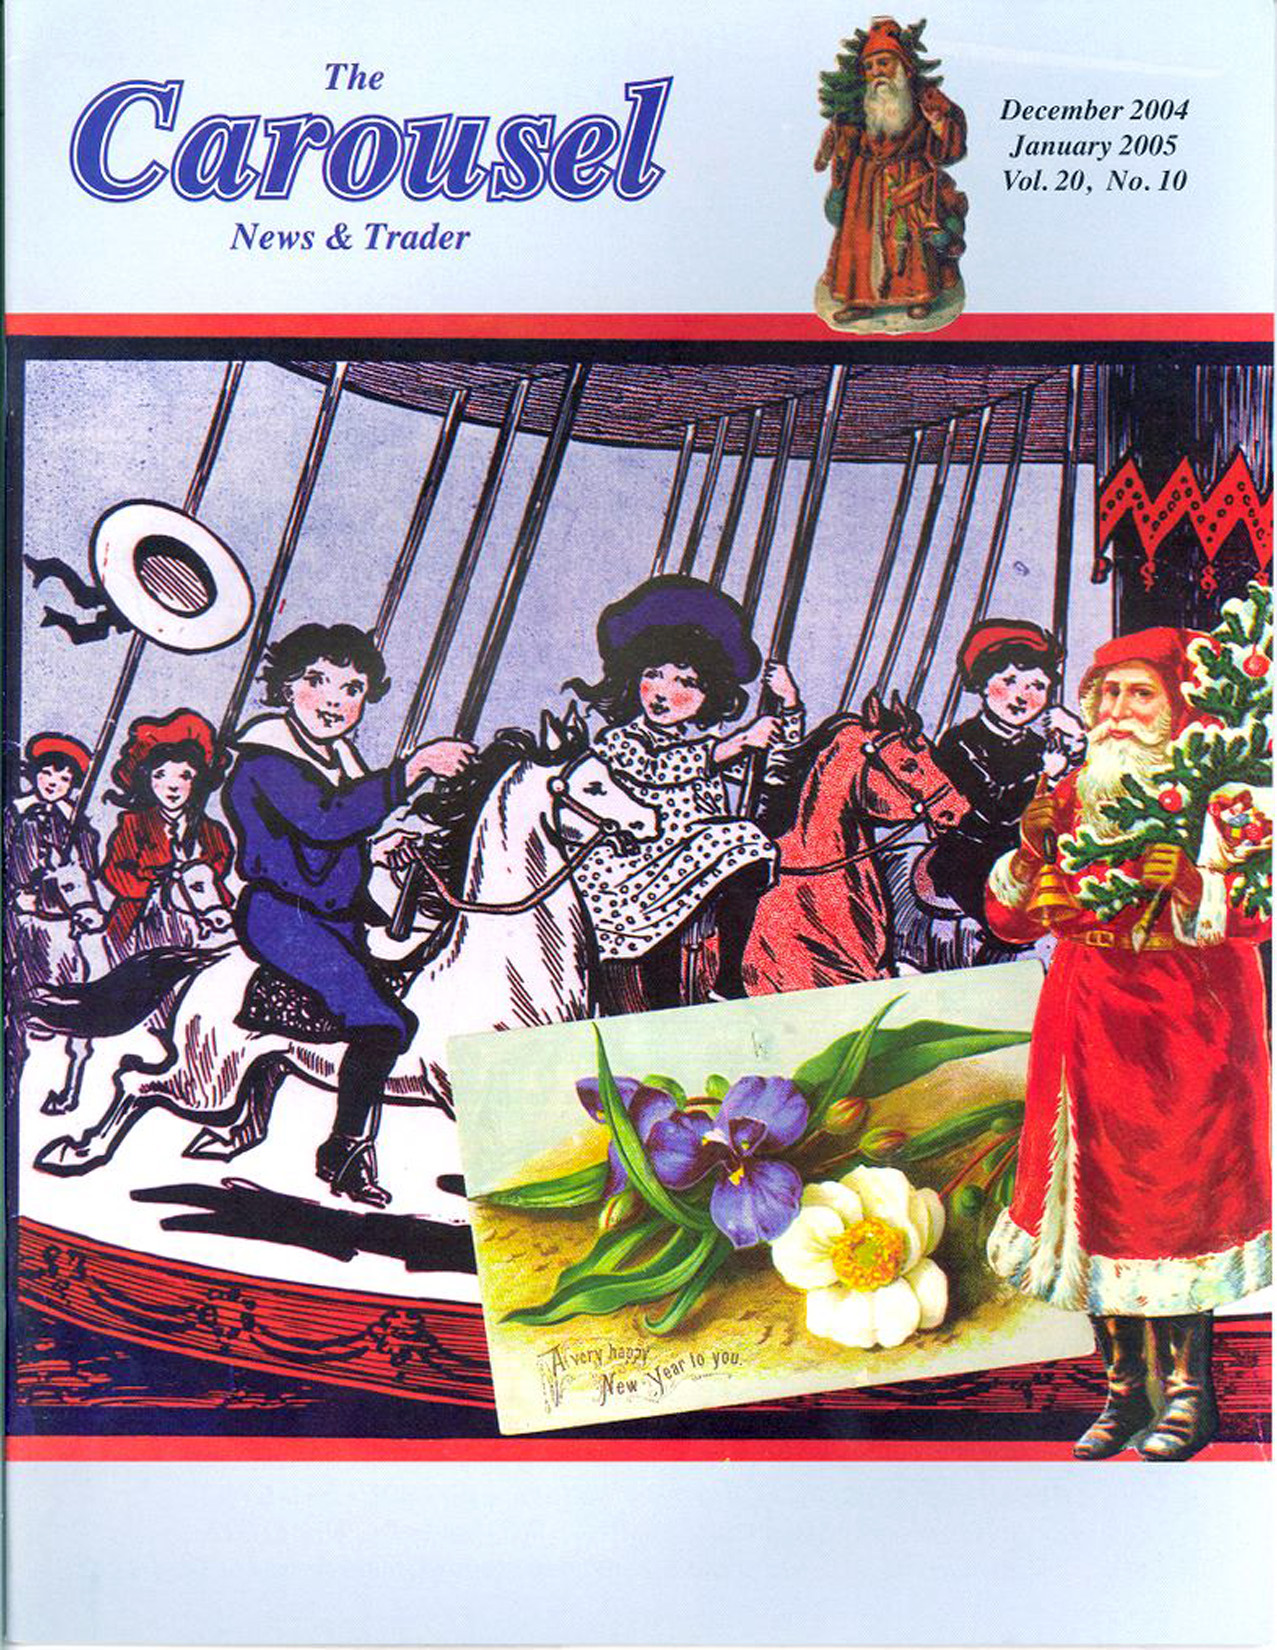 Carousel-news-cover-1_2005_12-04-Down-on-the-MerryGo-Round-sheet-music